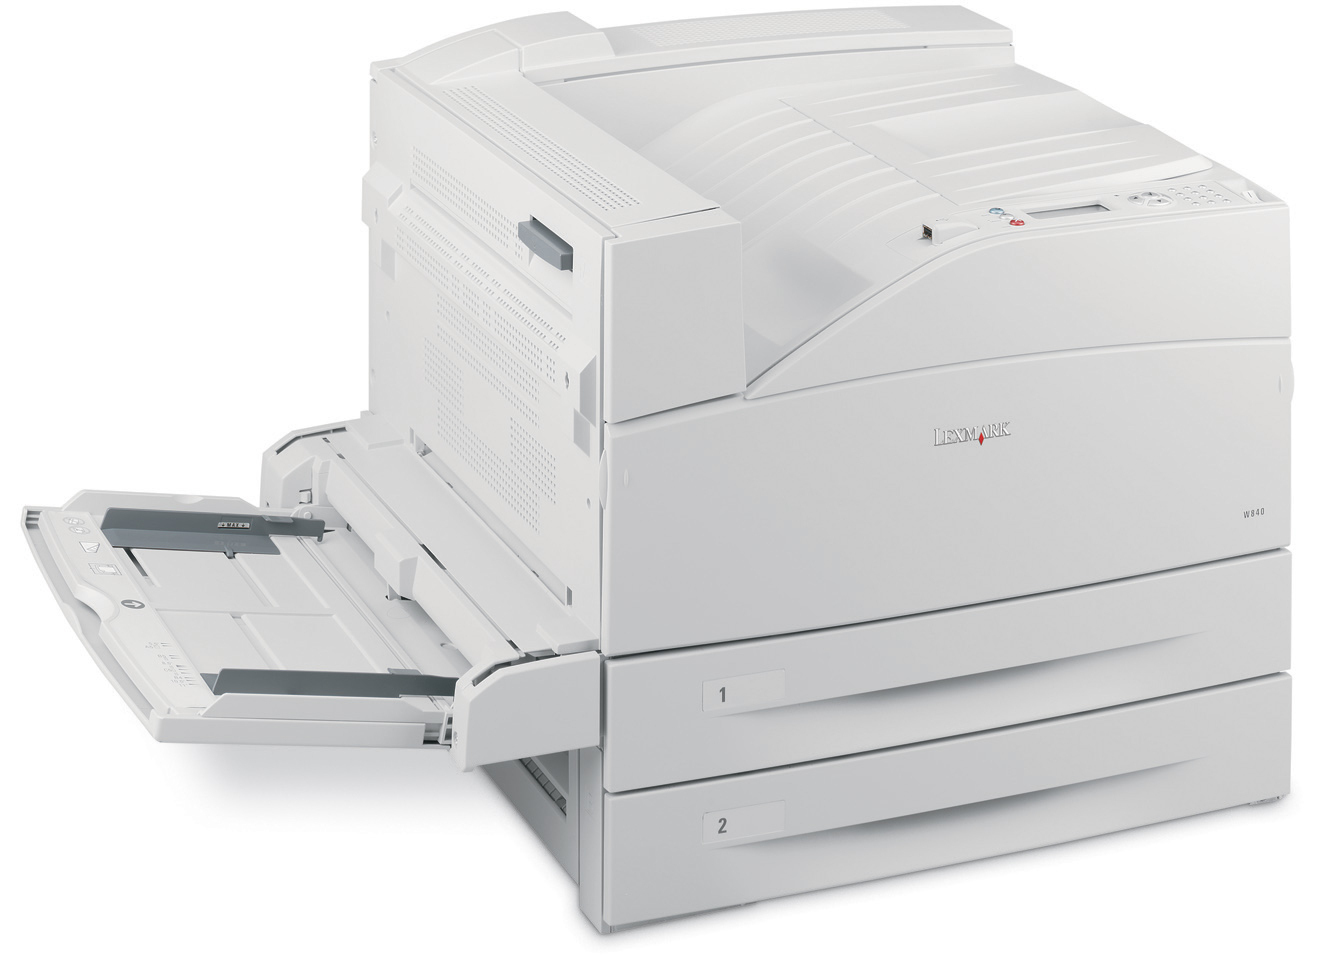 Lexmark W840dn Printer 25A0097 - Refurbished